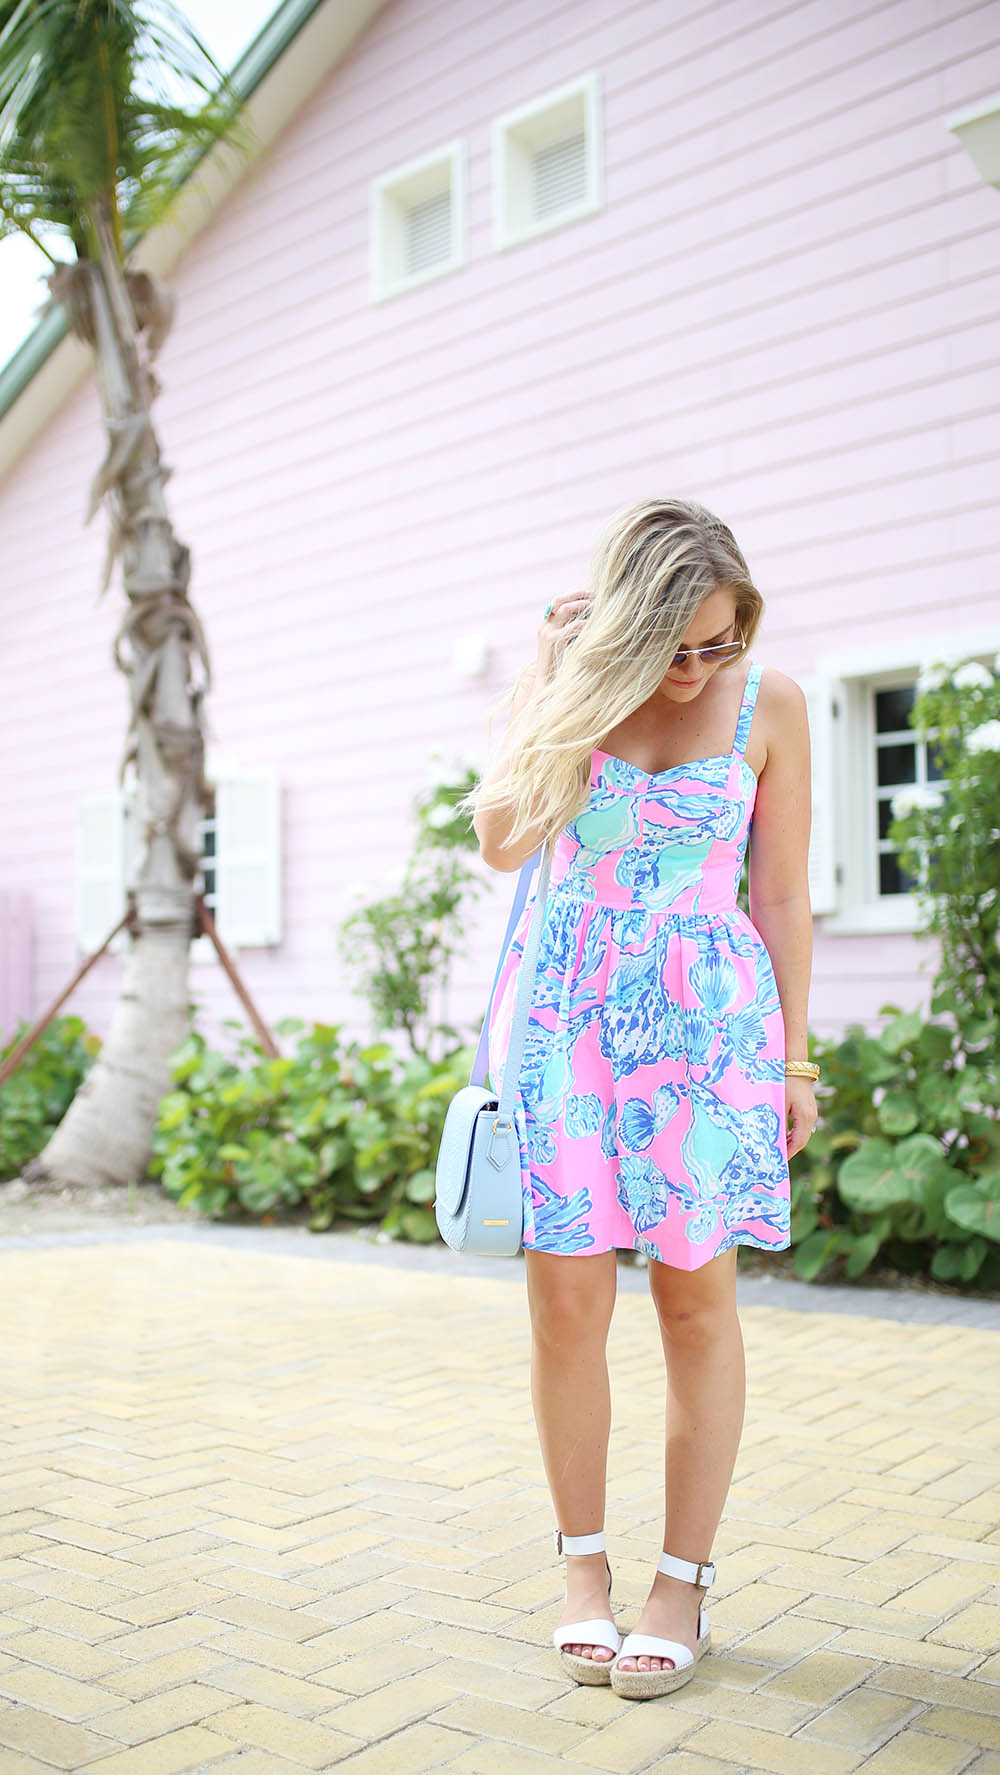 Seashells by the Seashore, Lilly Pulitzer Dress